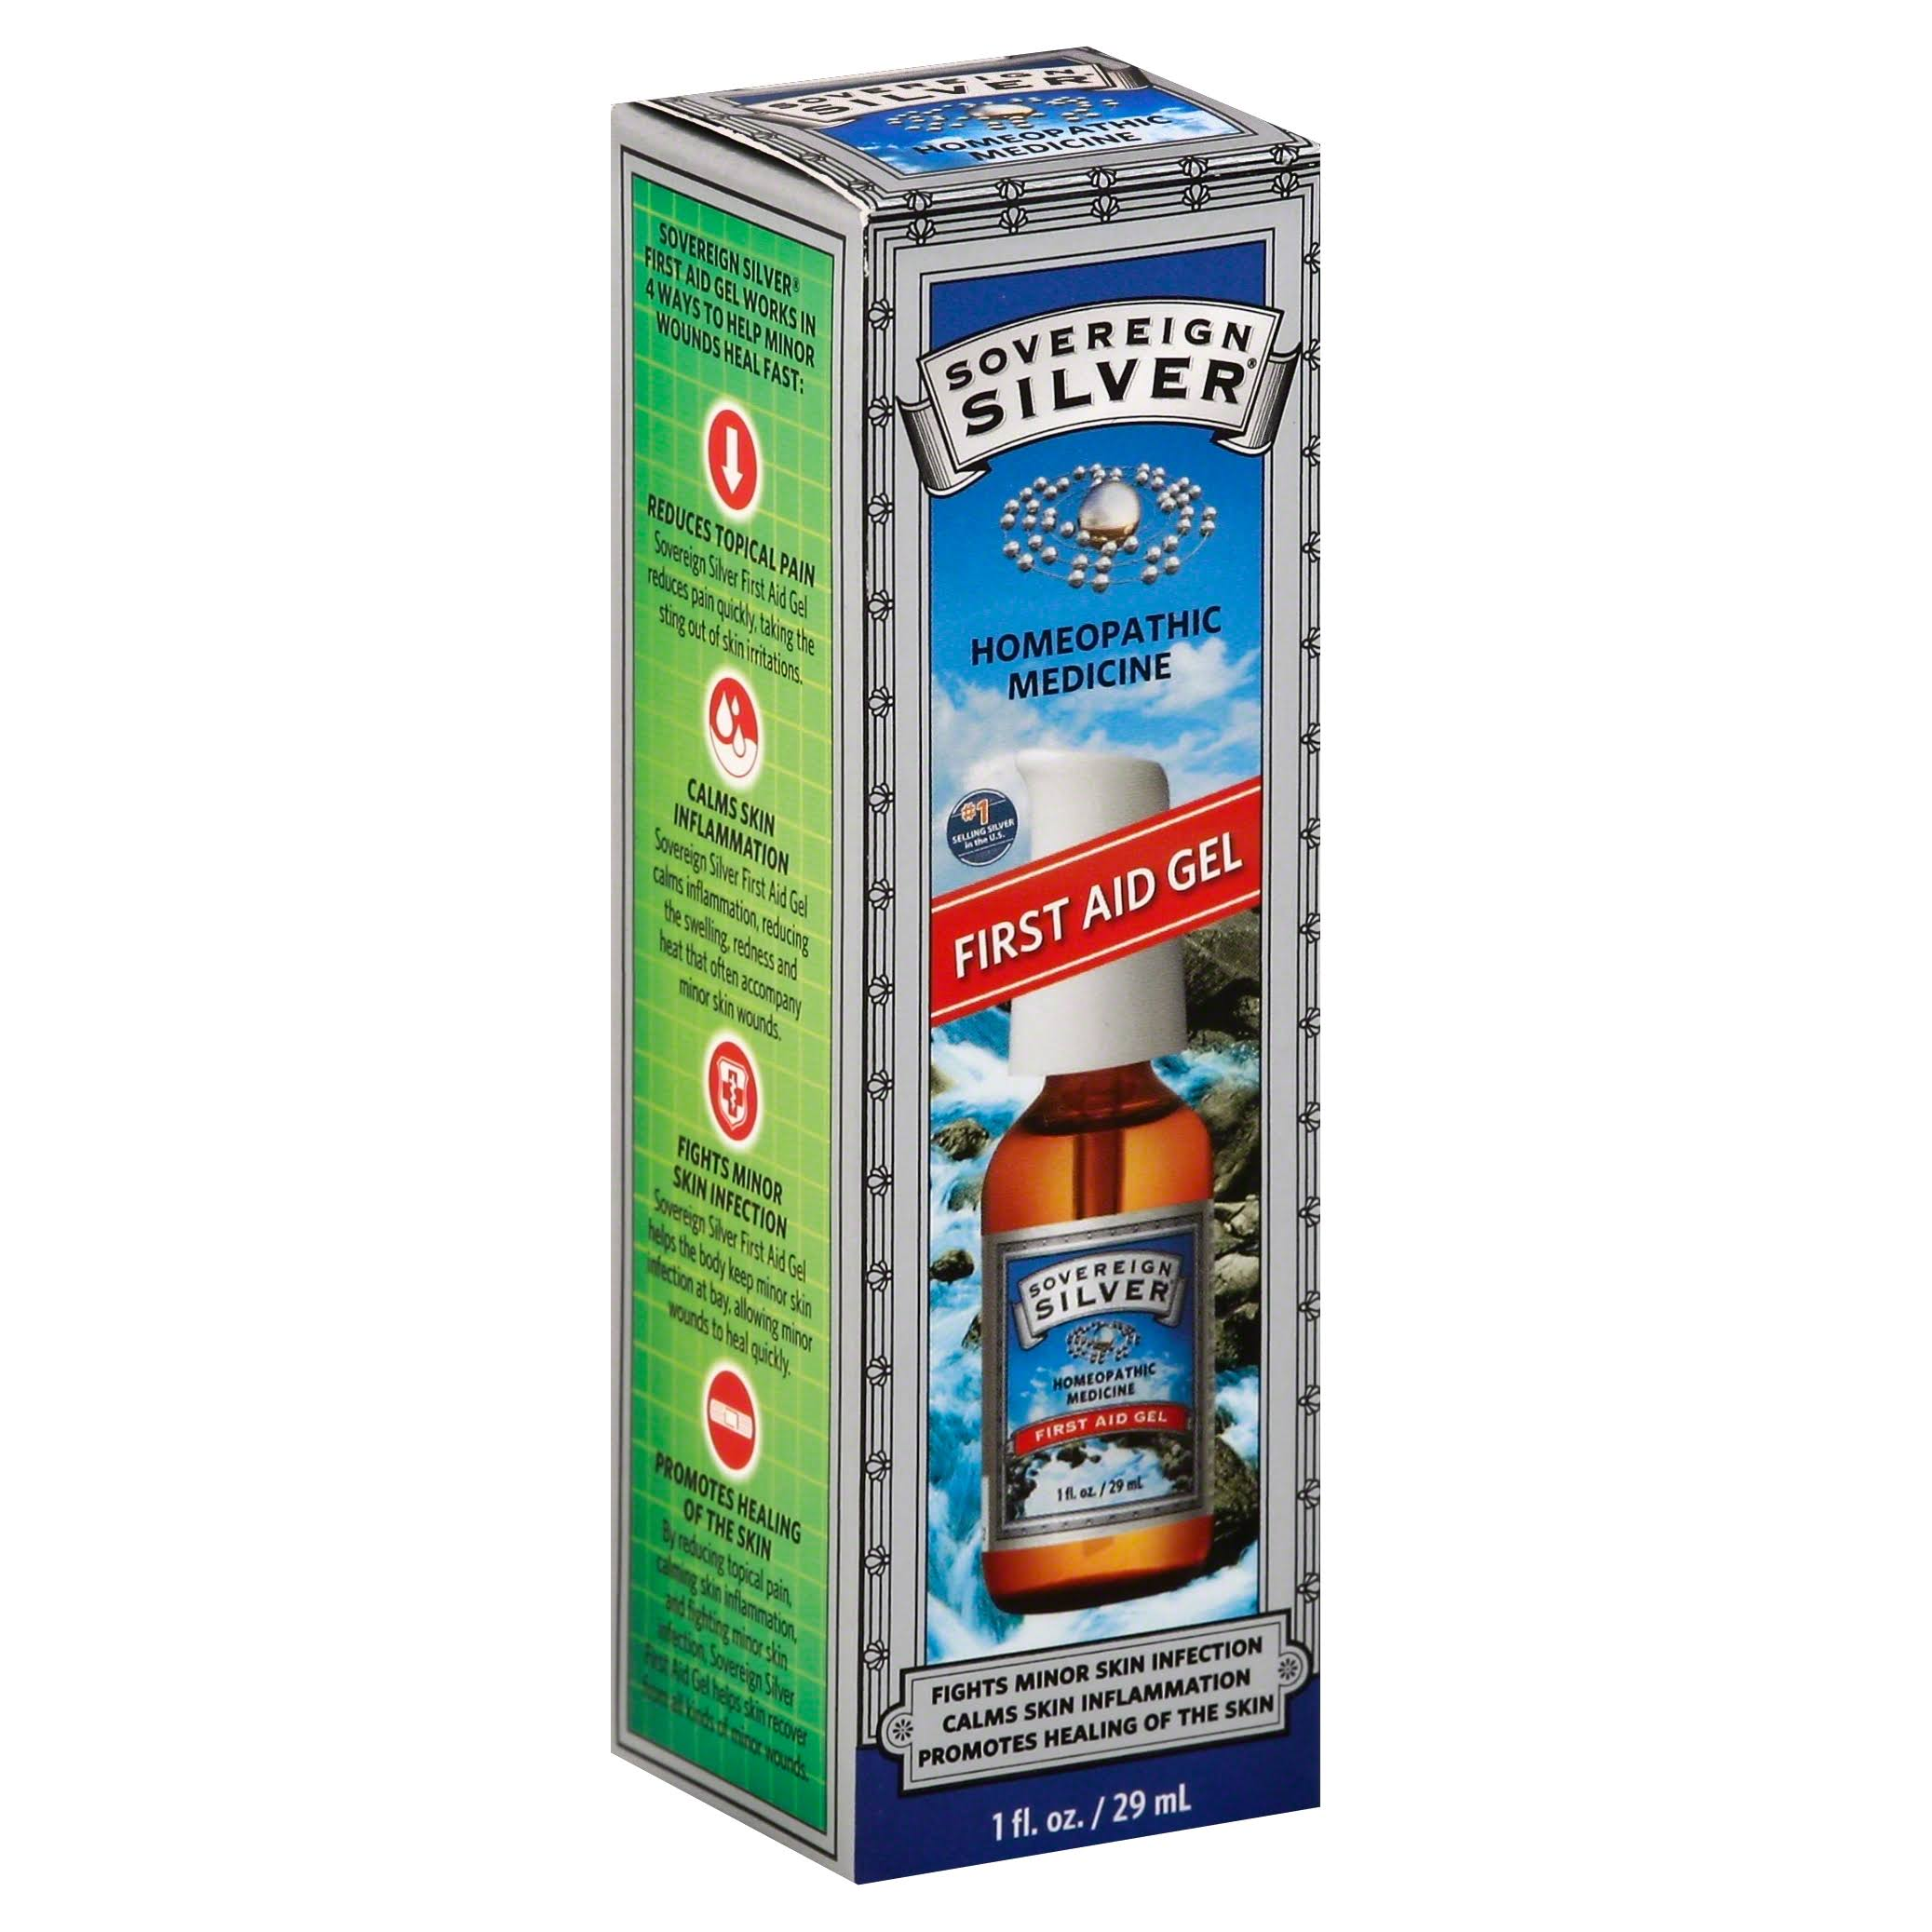 Sovereign Silver First Aid Gel - 29ml